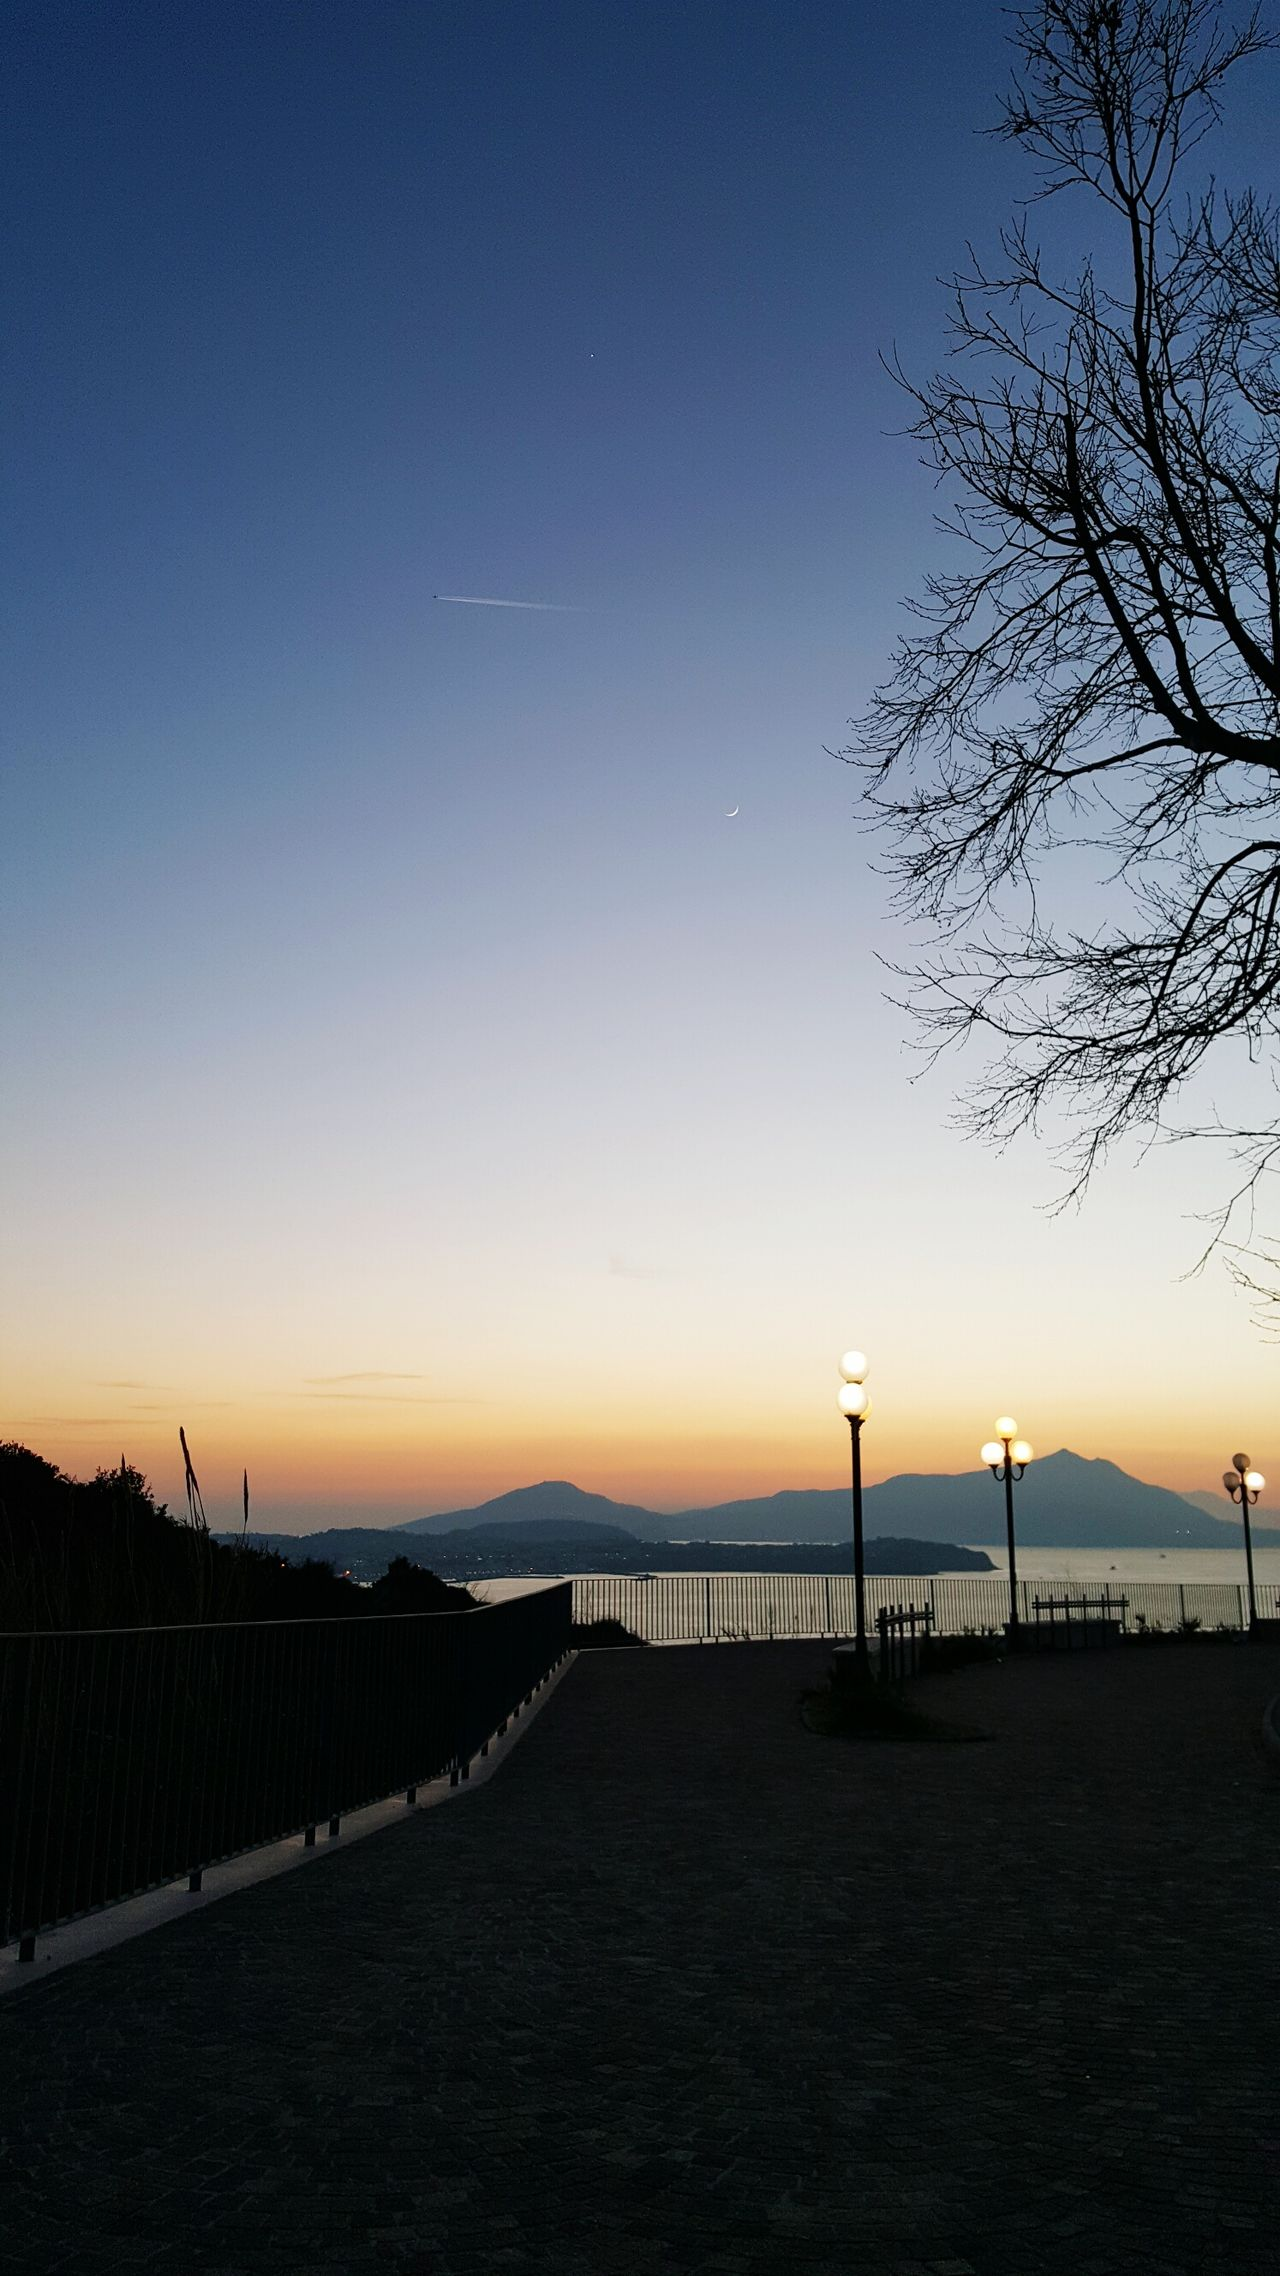 Sunset Sky Outdoors No People Water Nature Illuminated Architecture Scenics Sea Landscape_photography Landscape Tranquil Scene Sea And Sky Napoli ❤ Napoli Seaview Sky Porn Skylovers Tranquility Nature Beauty In Nature